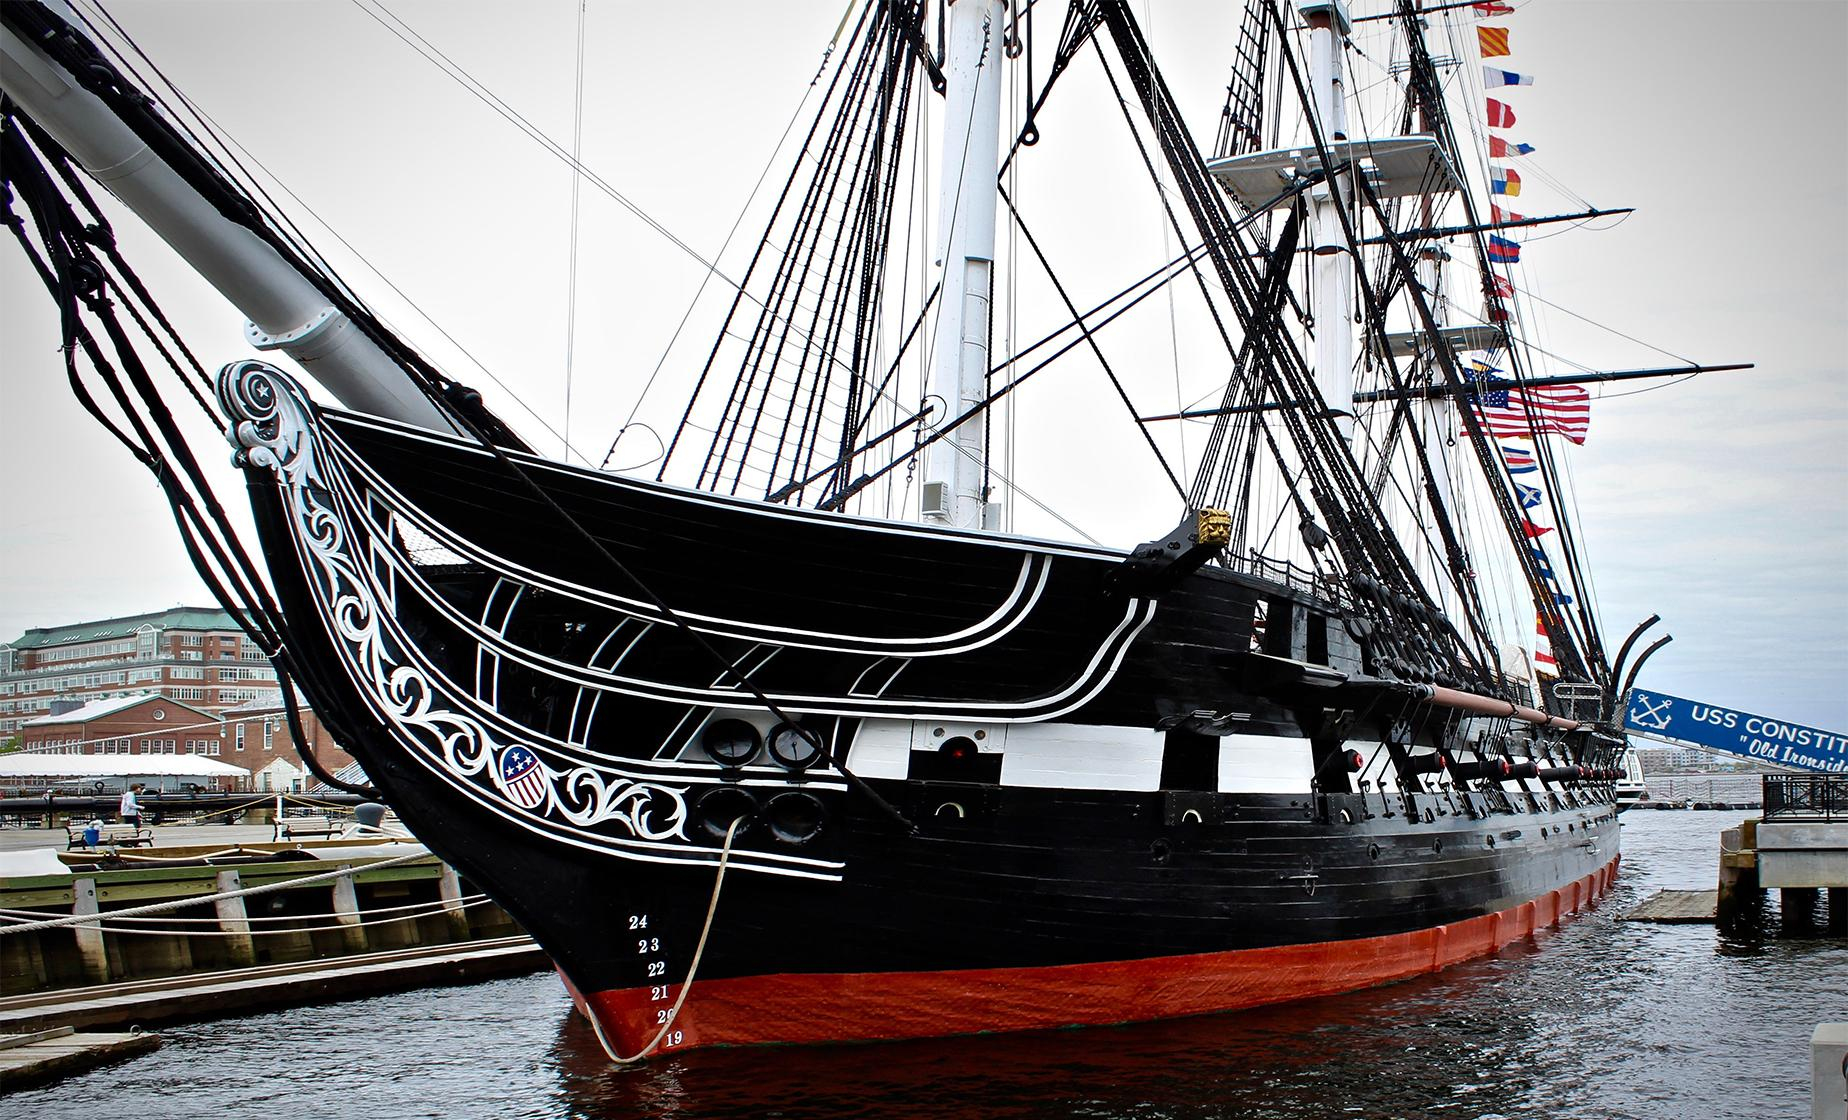 USS Constitution and Harbor Cruise Tour in Boston (Charlestown Navy Yard, Bunker Hill Monument)